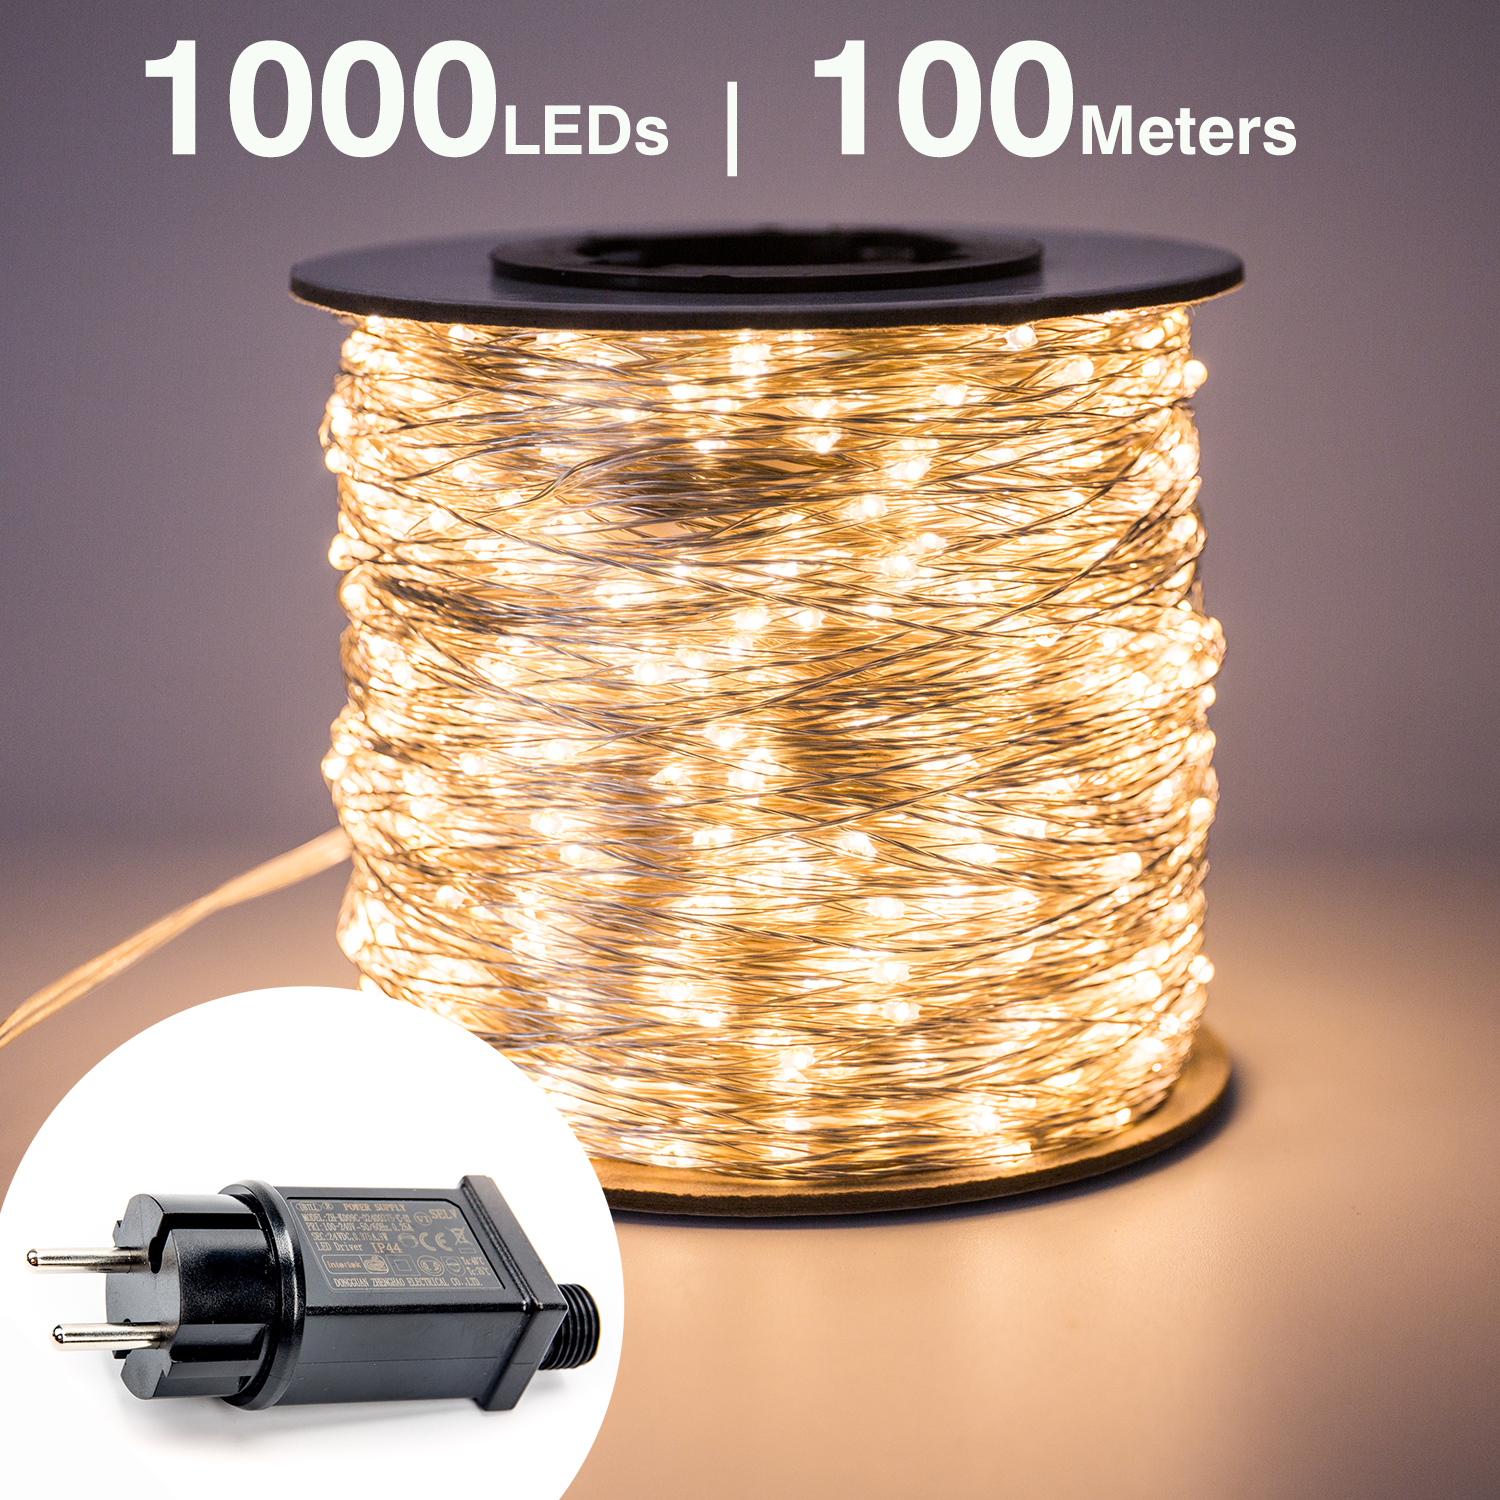 100M 1000 LED Silver Wire Fairy String Lights Wateproof Plug In Adapter For Tree Outdoor Christmas Holiday Wedding Decoration